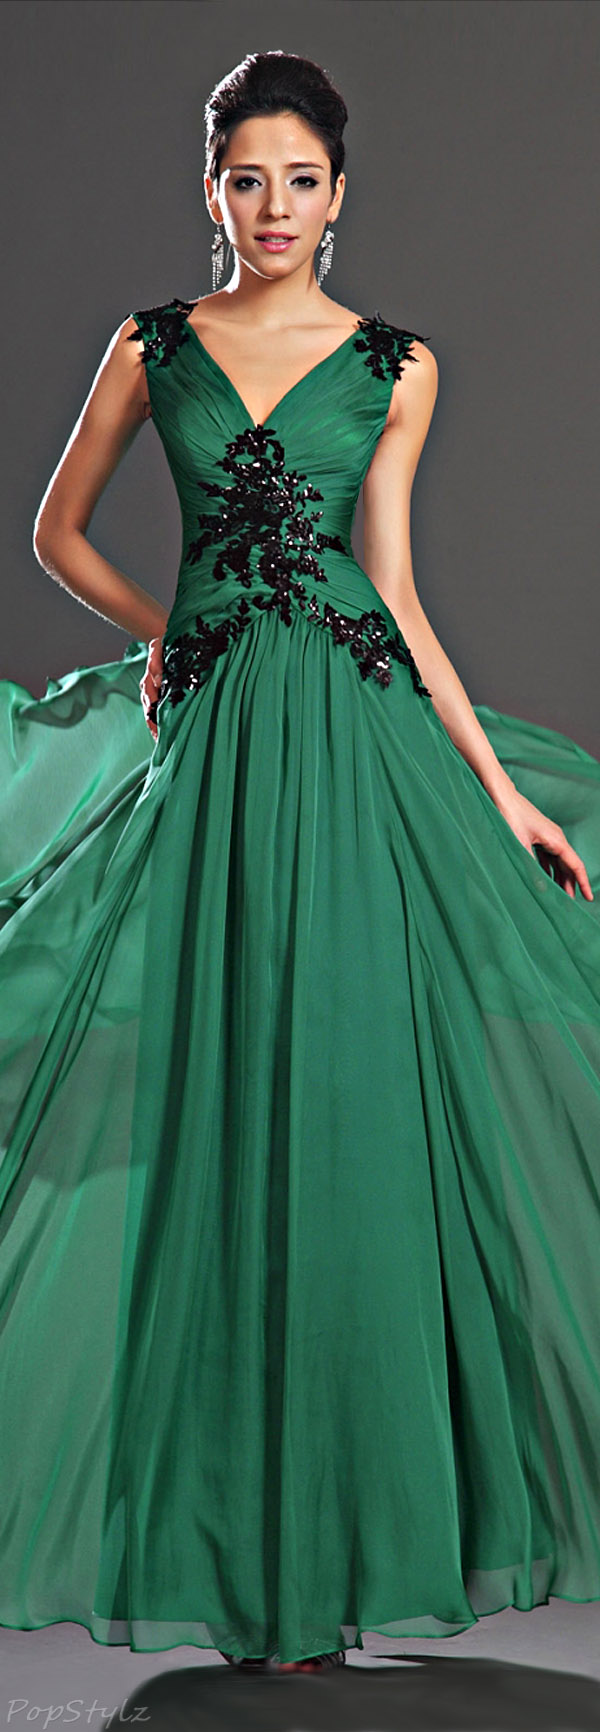 eDressit 00132504 Evening Gown